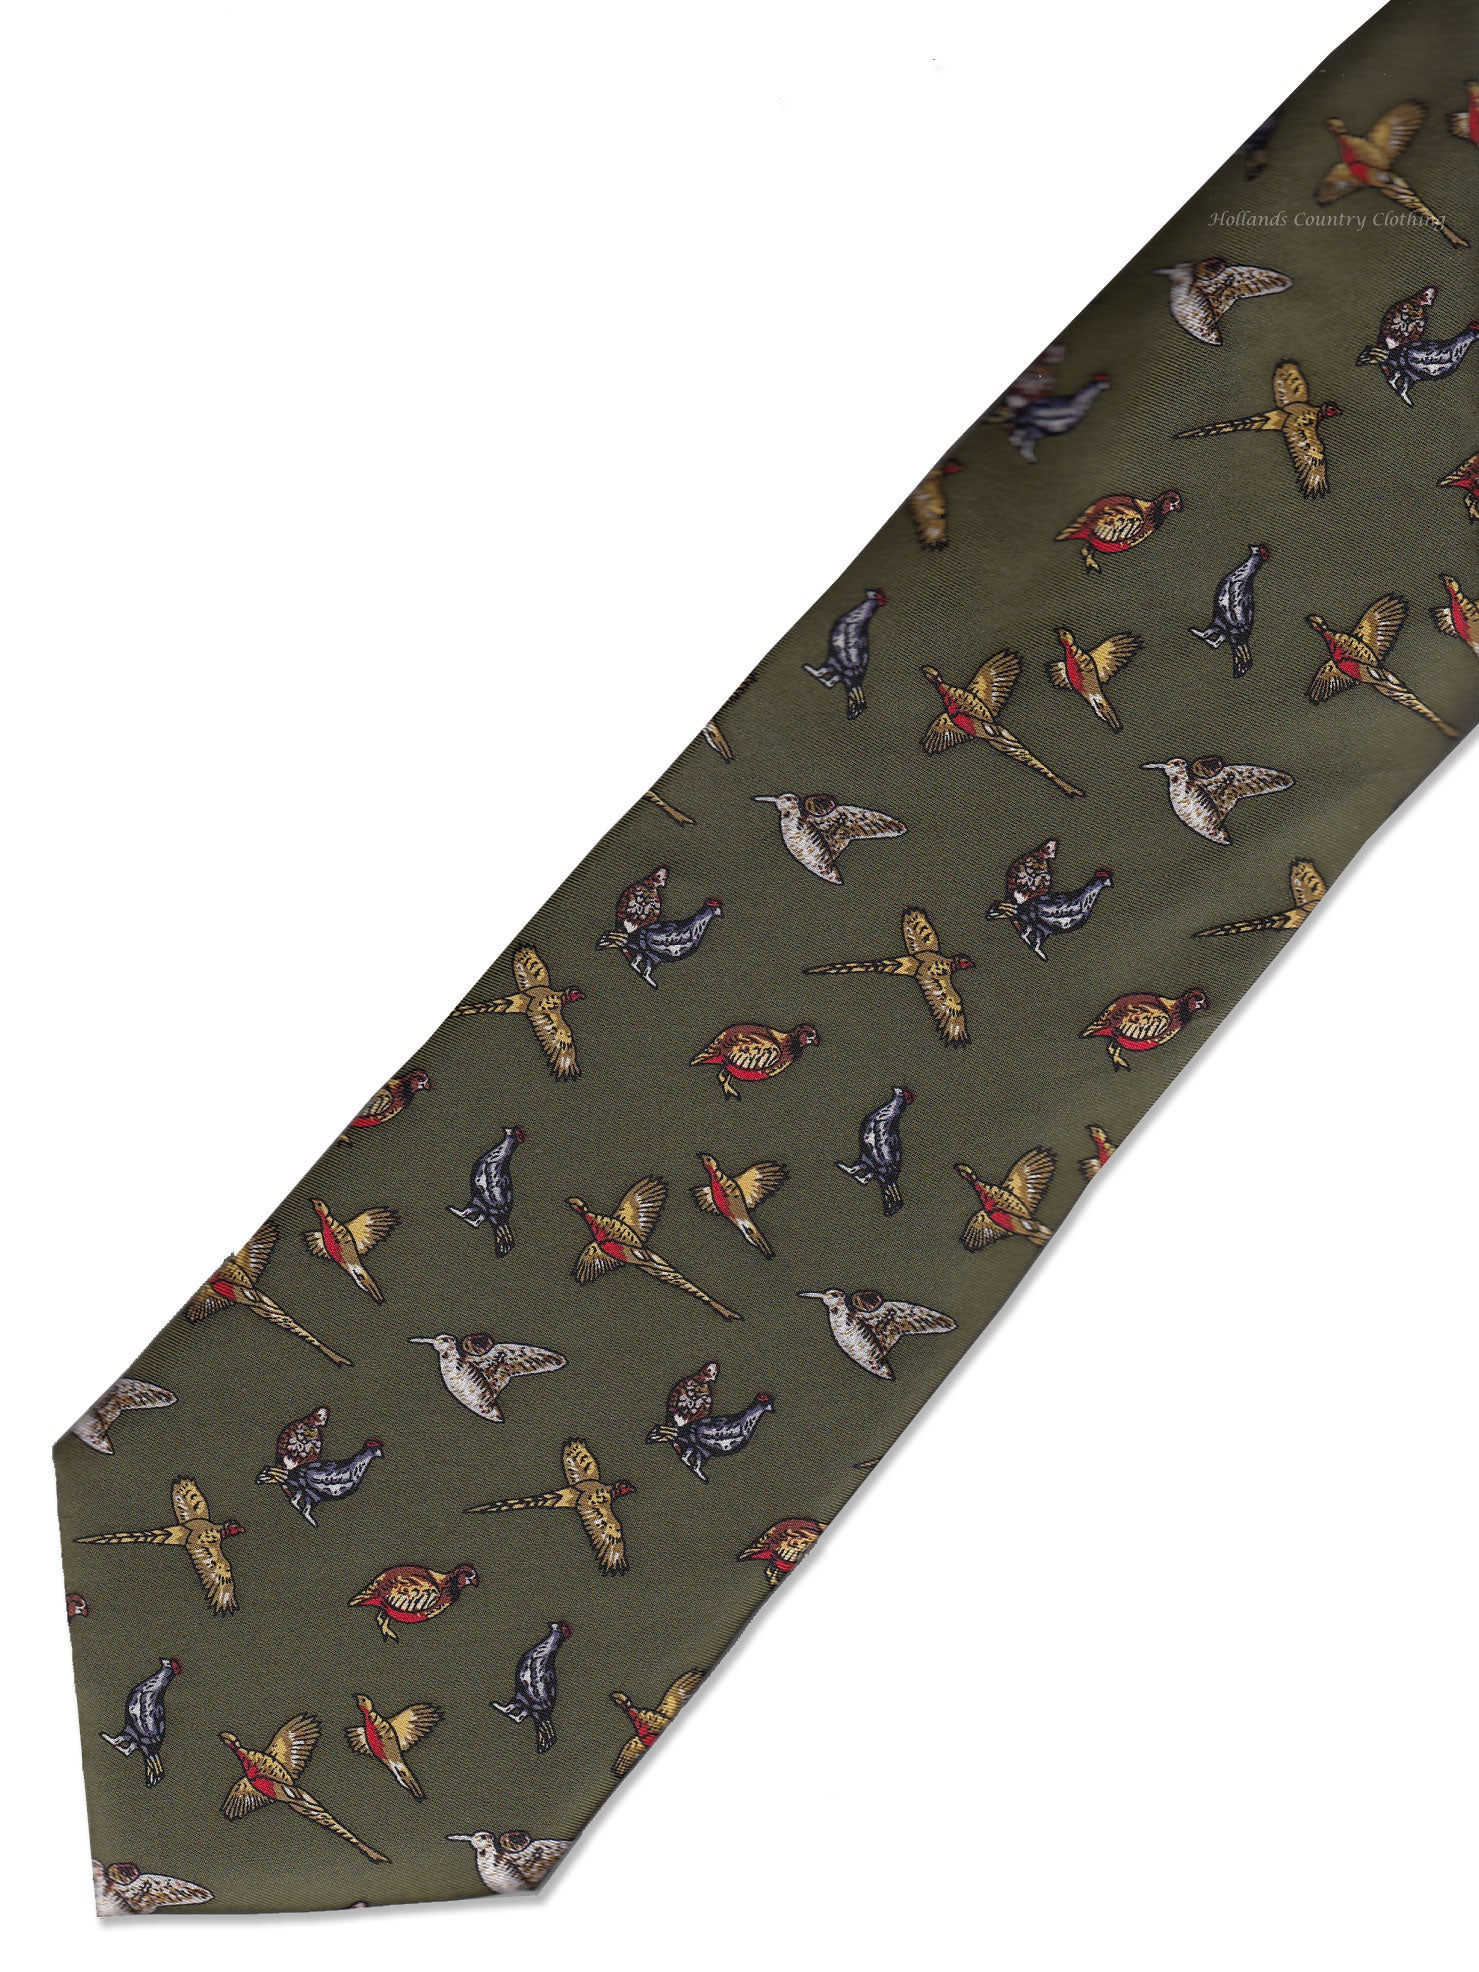 Hoggs Silk Tie - Green with Mixed Game Birds